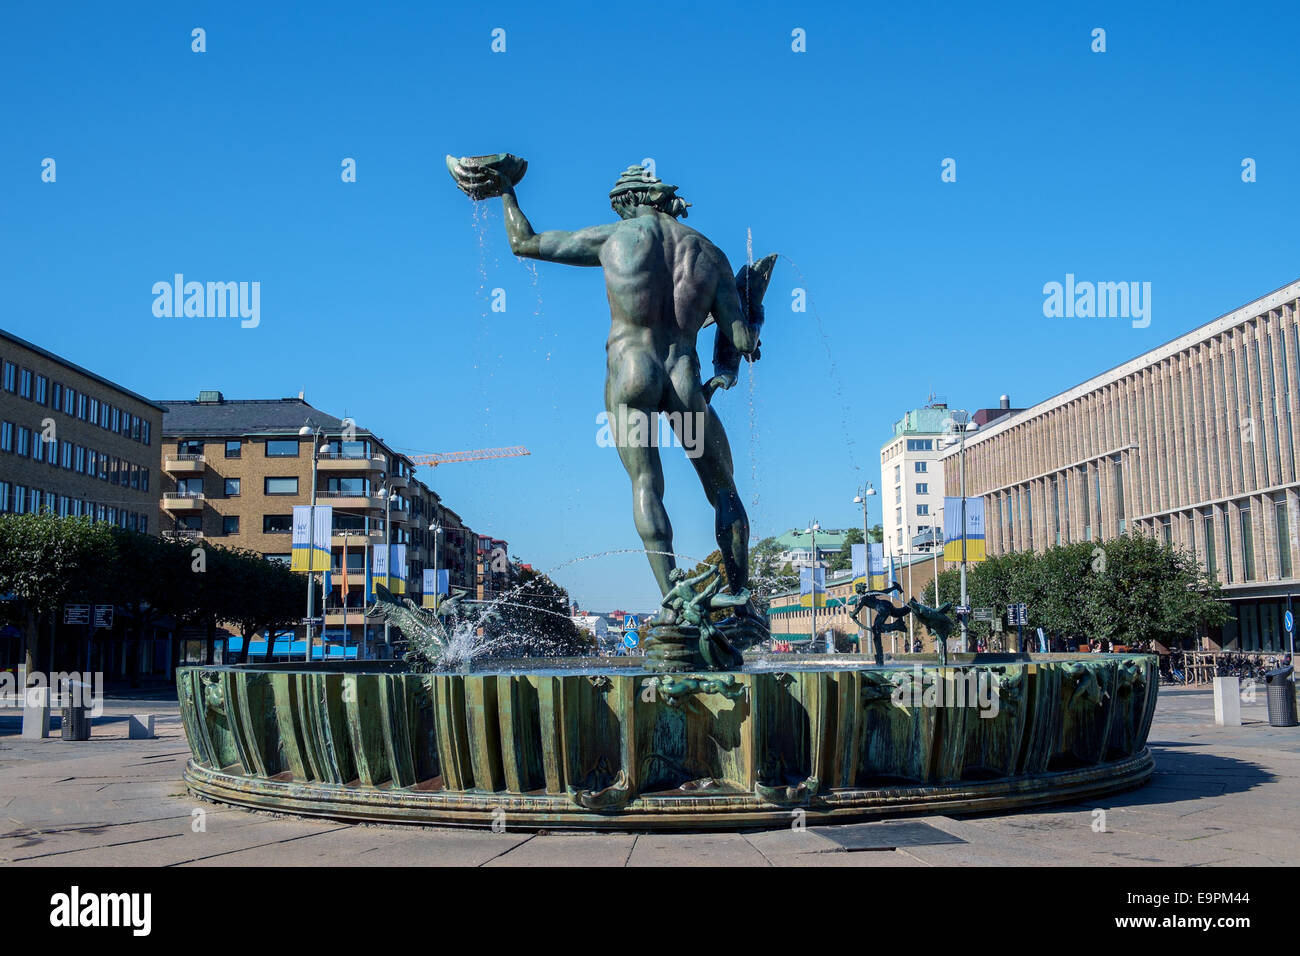 The iconic statue Poseidon by Carl Milles at Götaplatsen in Gothenburg. - Stock Image